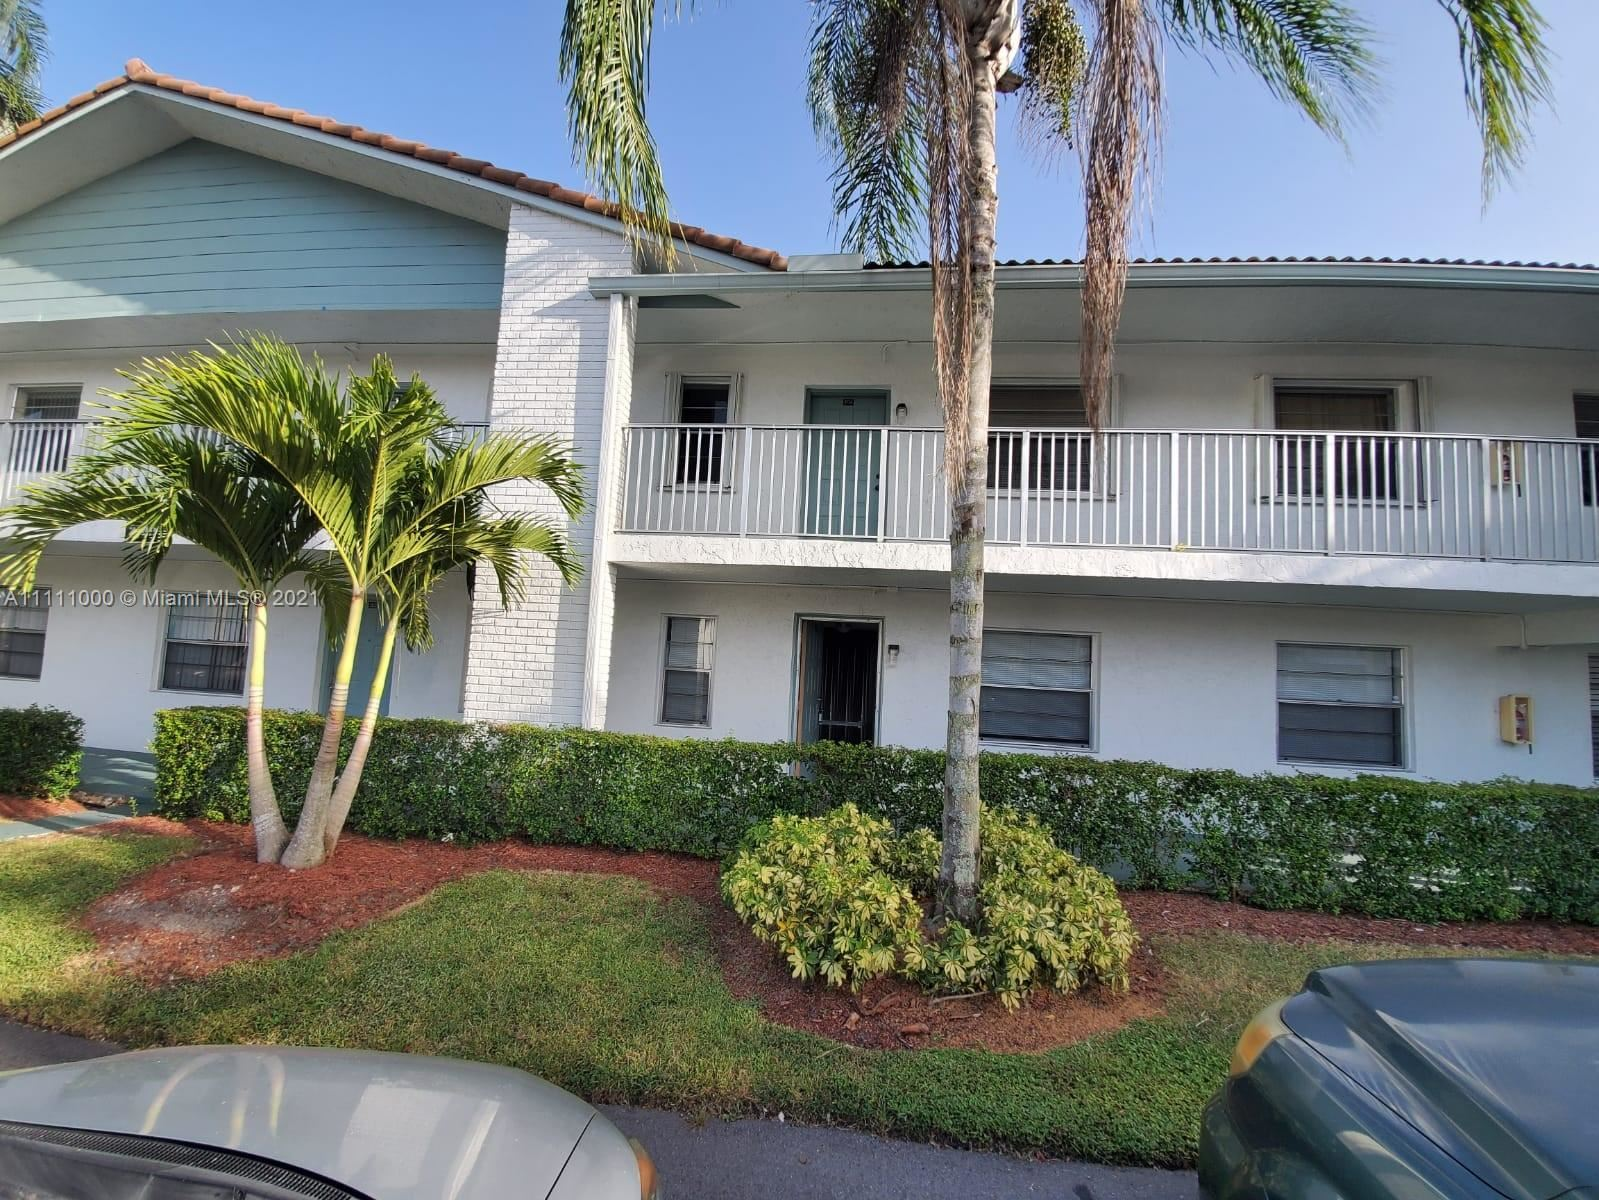 Photo of 2740 Forest Hills Blvd #104, Coral Springs, FL 33065 (MLS # A11111000)